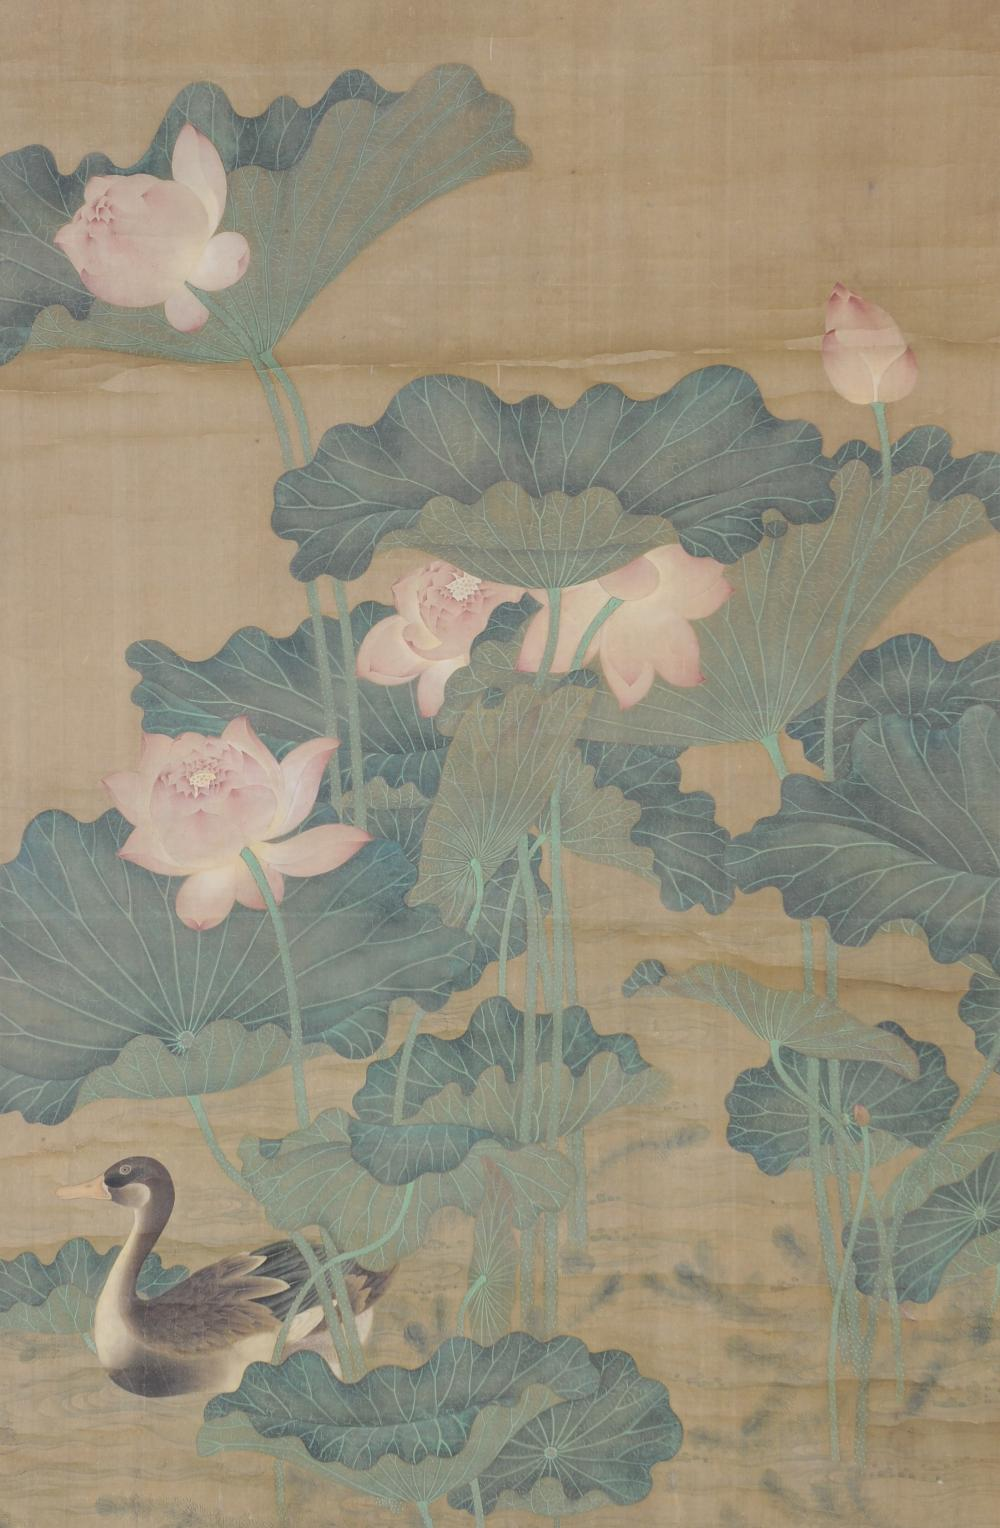 CHINESE PAINTING OF DUCK W/ LOTUSES, ZHOU ZHIMIAN